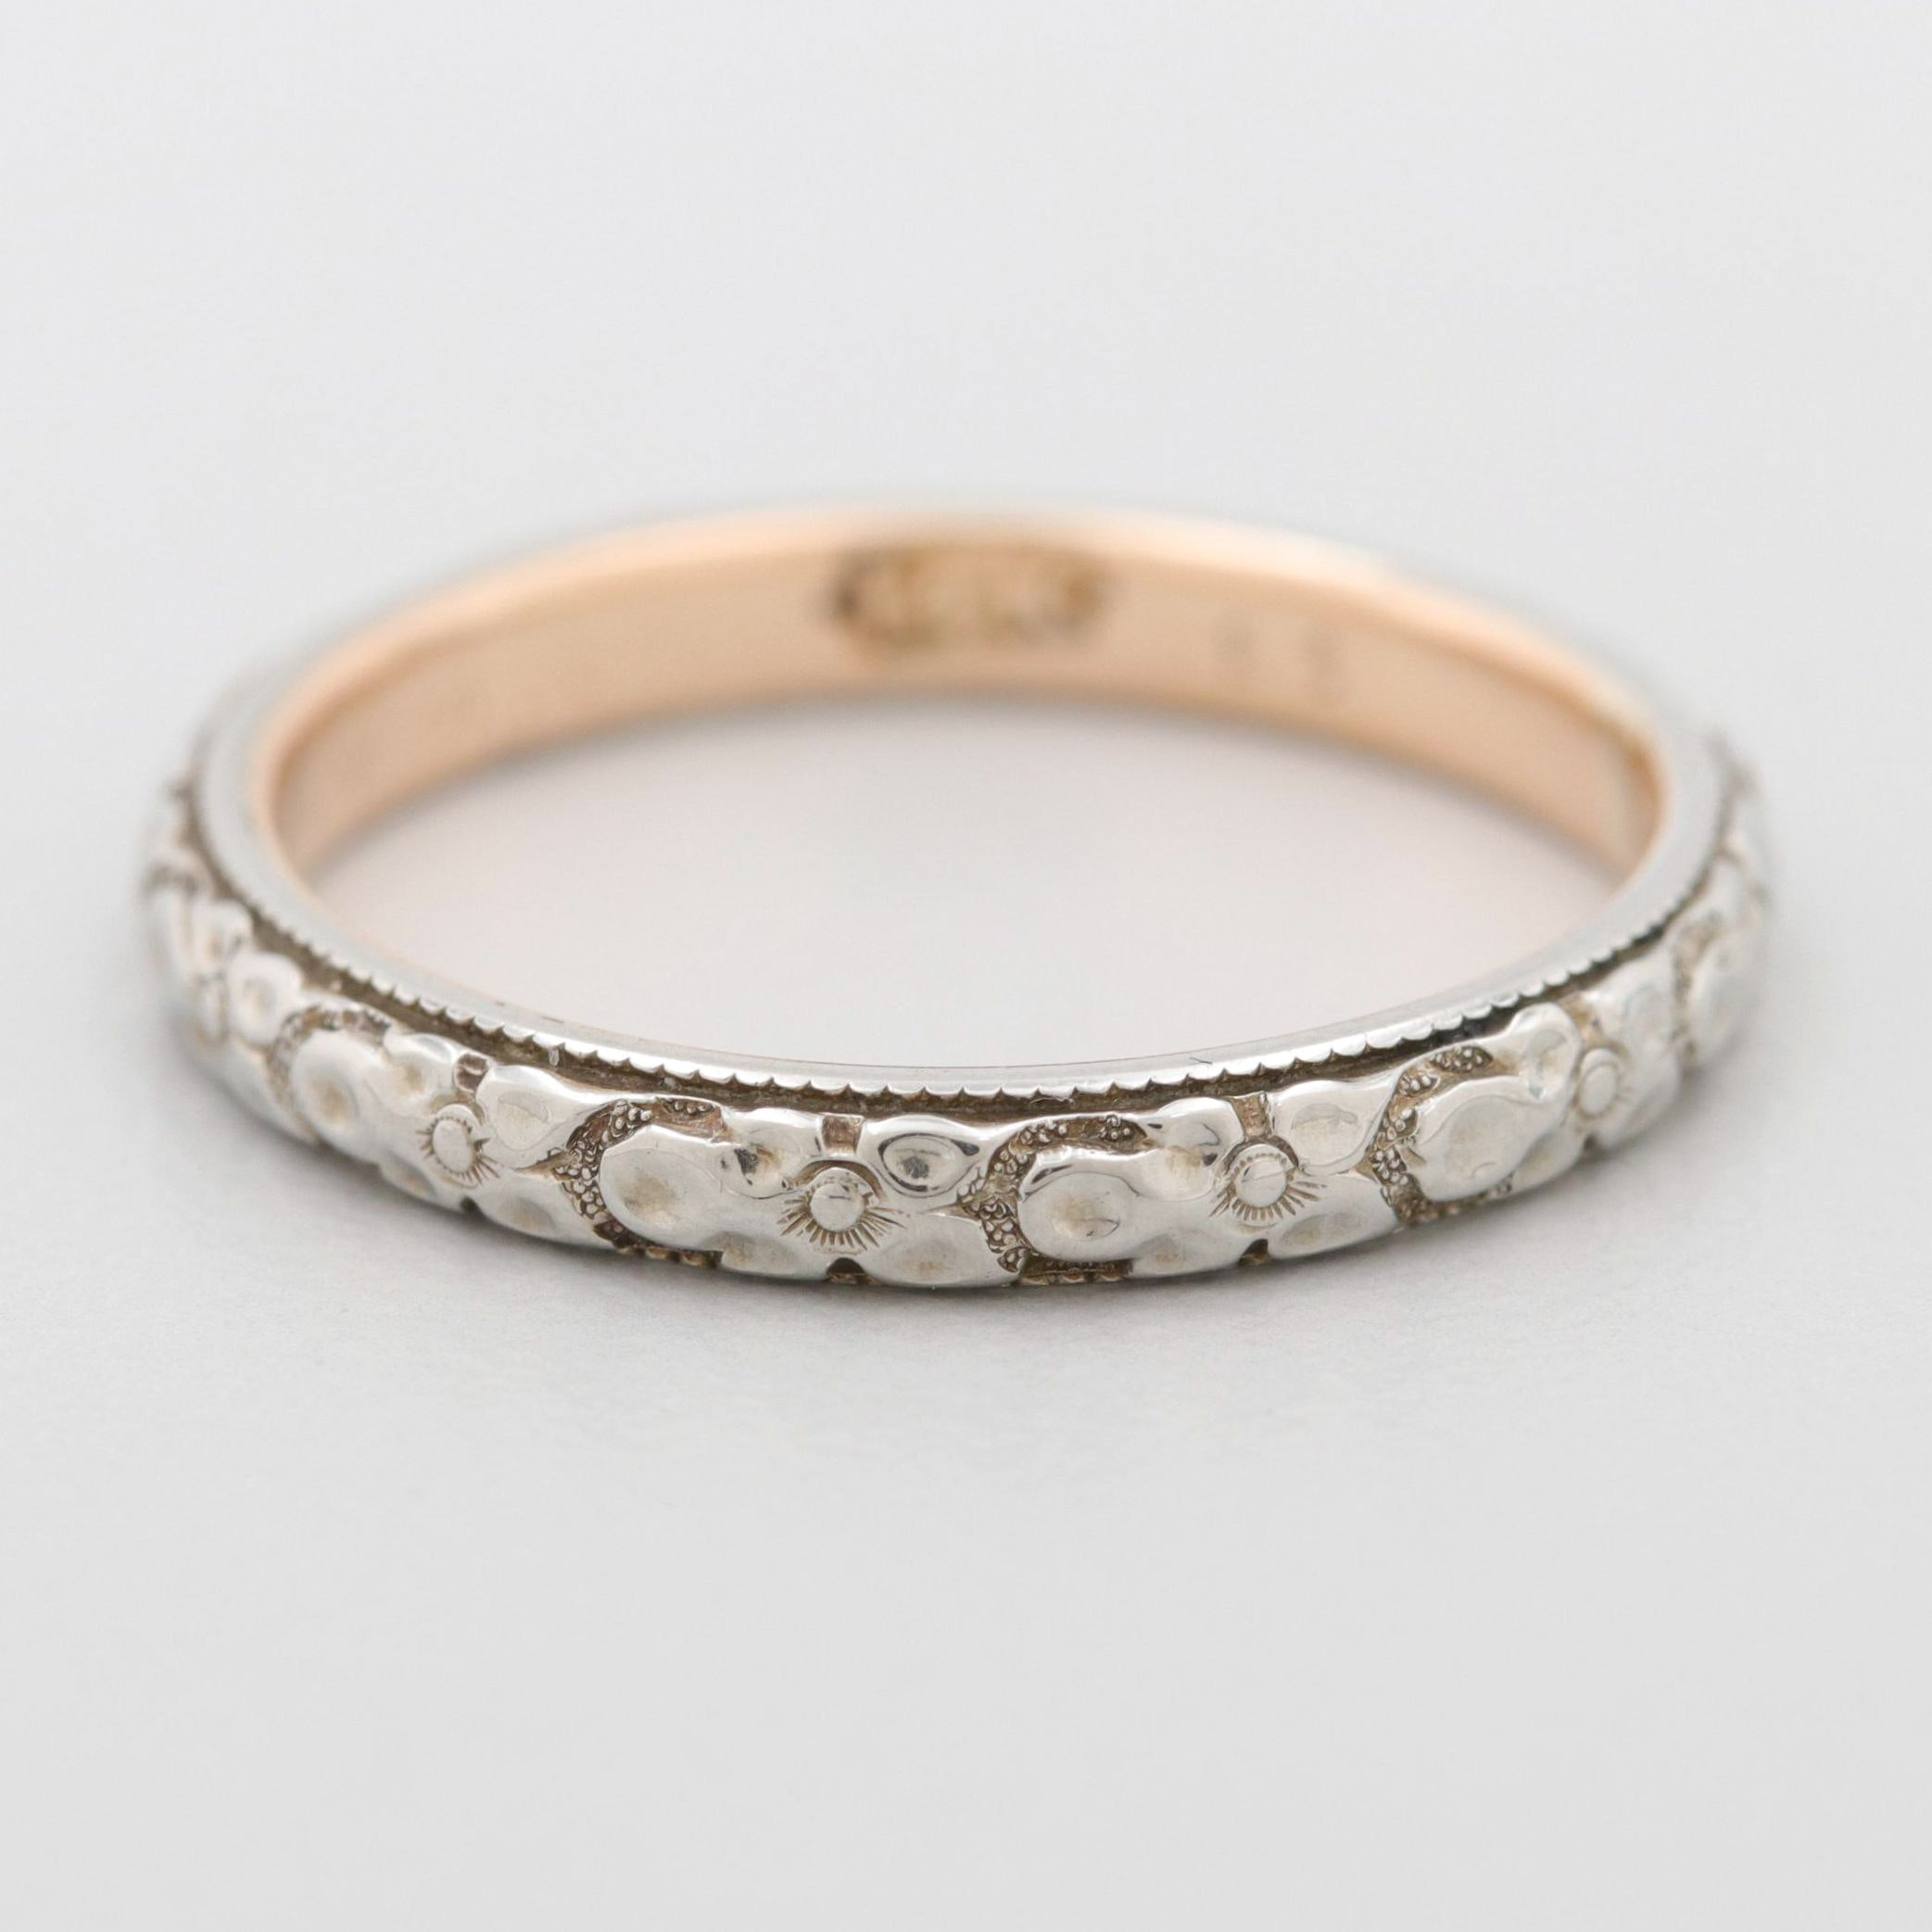 Vintage 18K White and Yellow Gold Band with Floral Motif